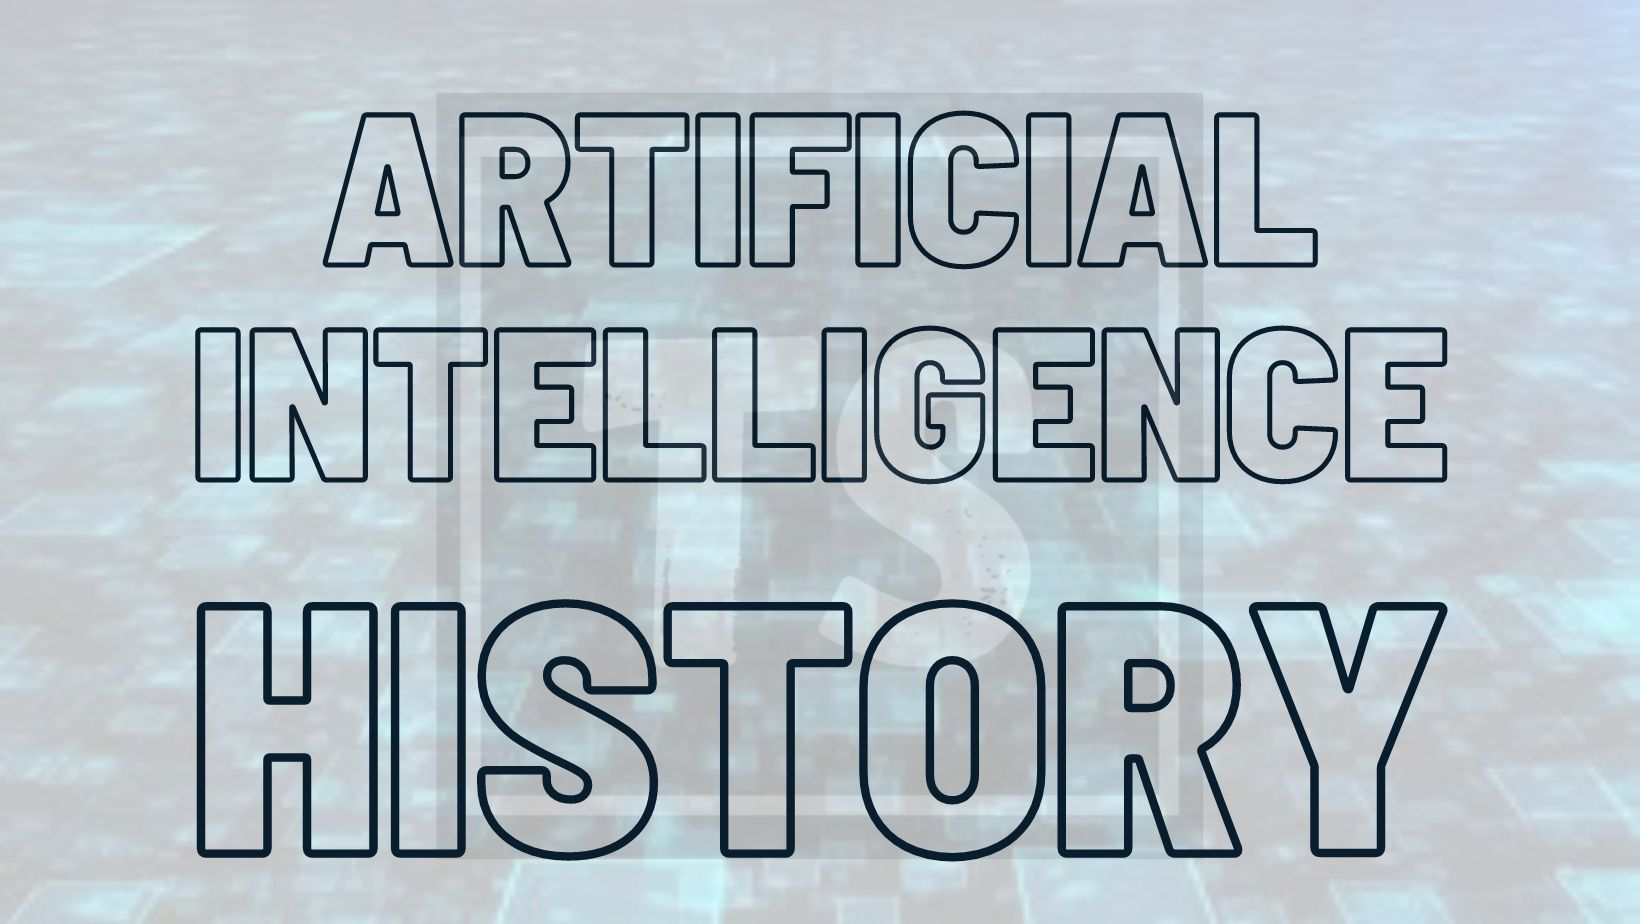 Let's dive into the history of Artificial Intelligence…